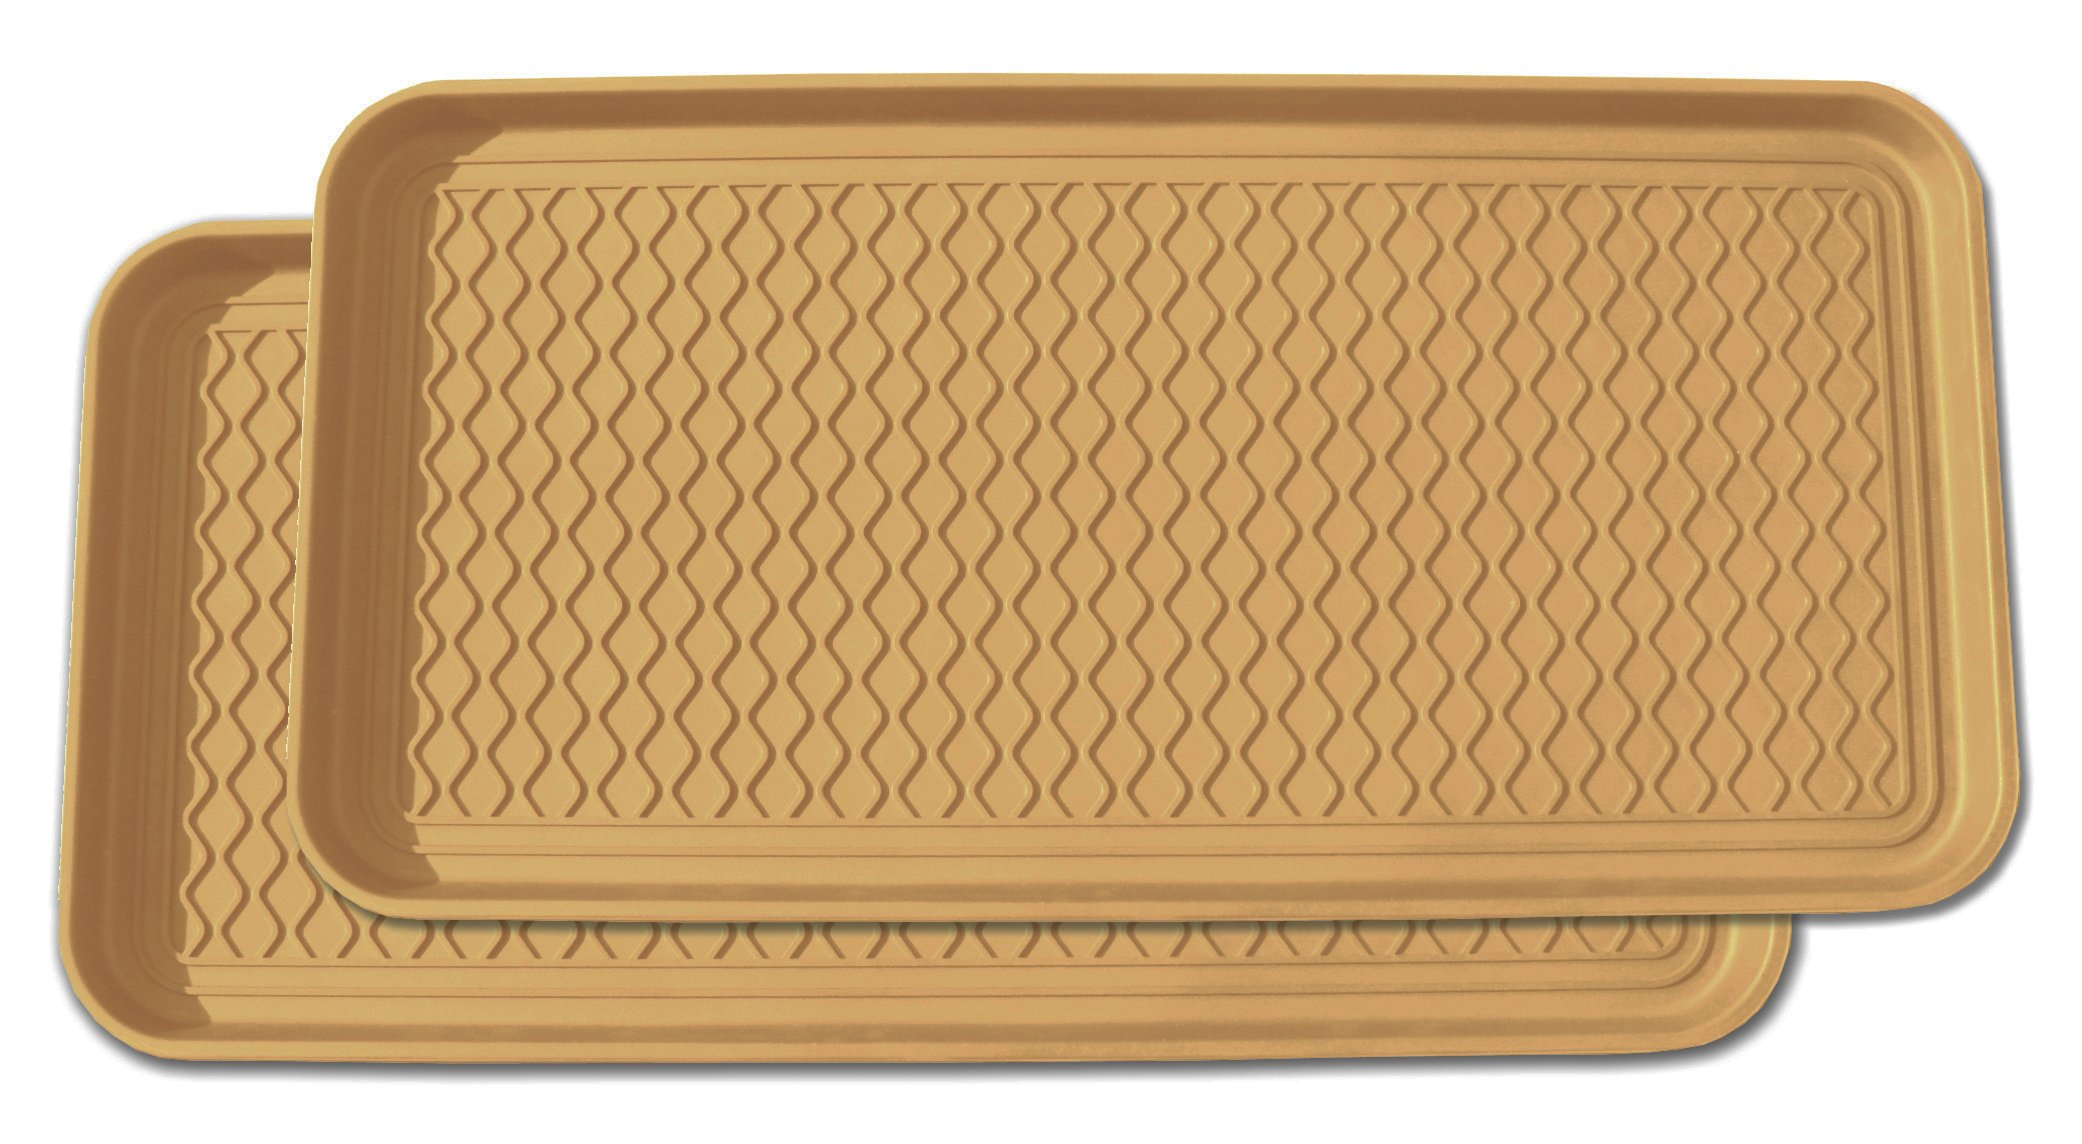 Multi-purpose Tray, for Boots, Shoes, Paint, Pets, Garden, Laundry, Kitchen, Car, Entryway, Garage, Mudroom. Floor Protection, Cat Litter and Dog Feeding Mat - 30x15x1.2 Inches - Beige, Set of 2